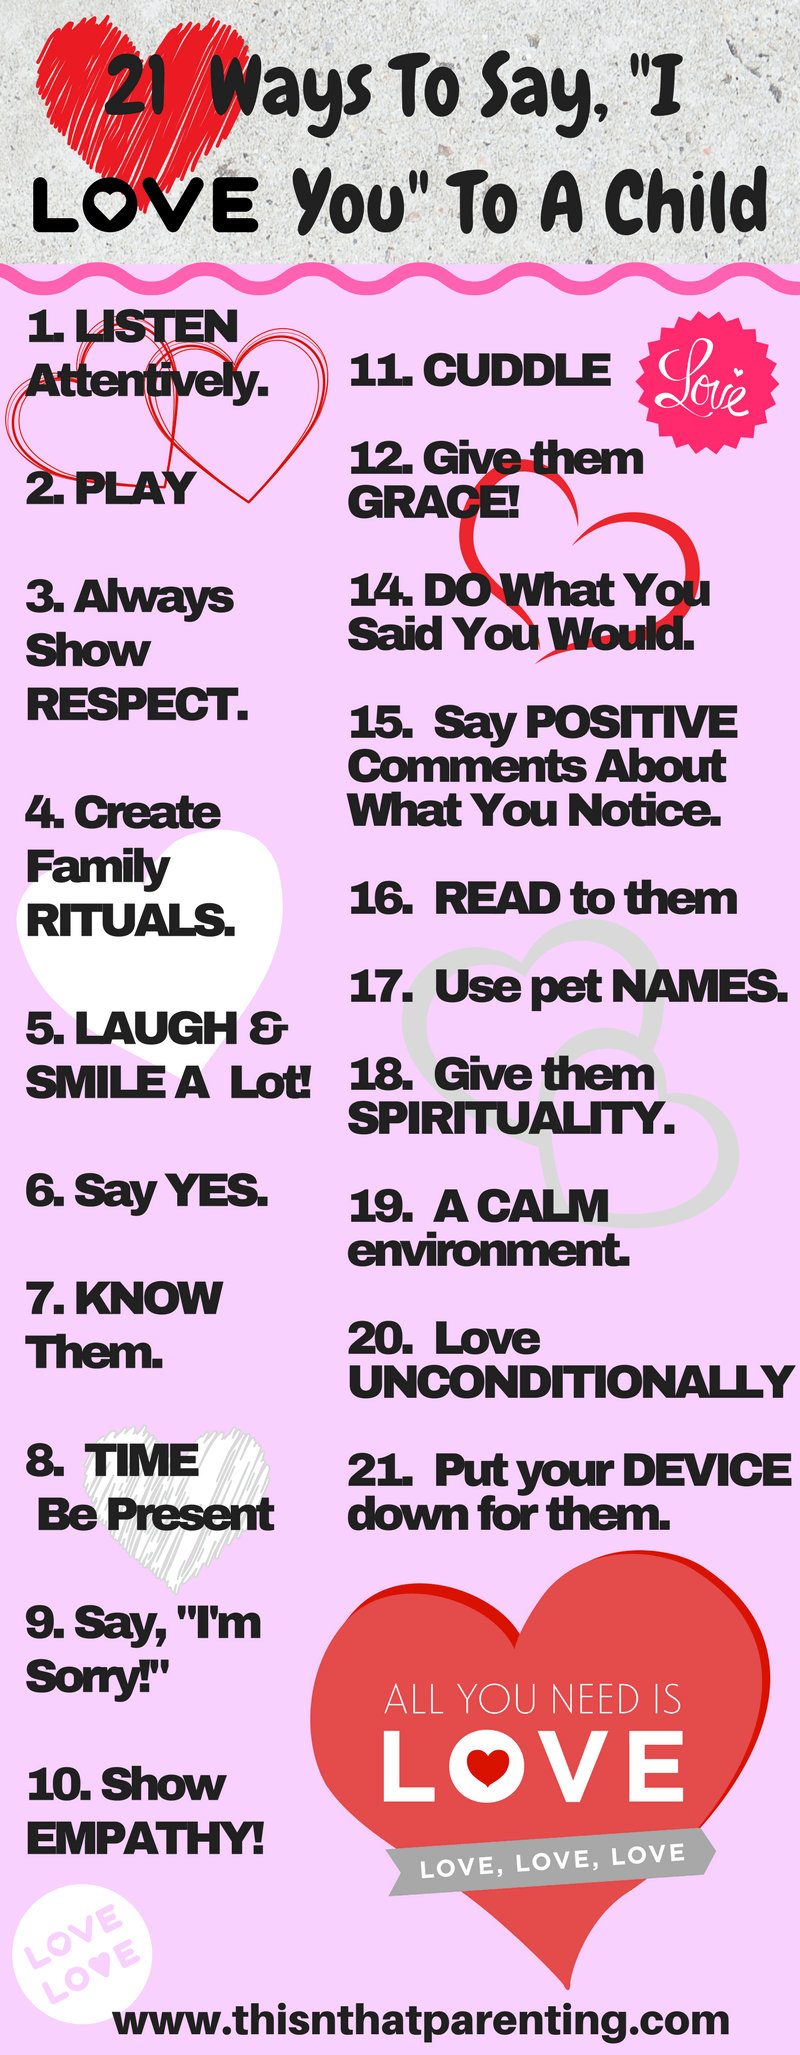 20 Ways to Say I Love You to Your Child In this post, you will find an infographic that includes 21 of the top ways children like to be shown love. We want our children to remember us as loving, and we want them to feel loved. We have to be intentional about taking action to make sure they know. #sayingiloveyouwithoutsayingout #intentionalparenting